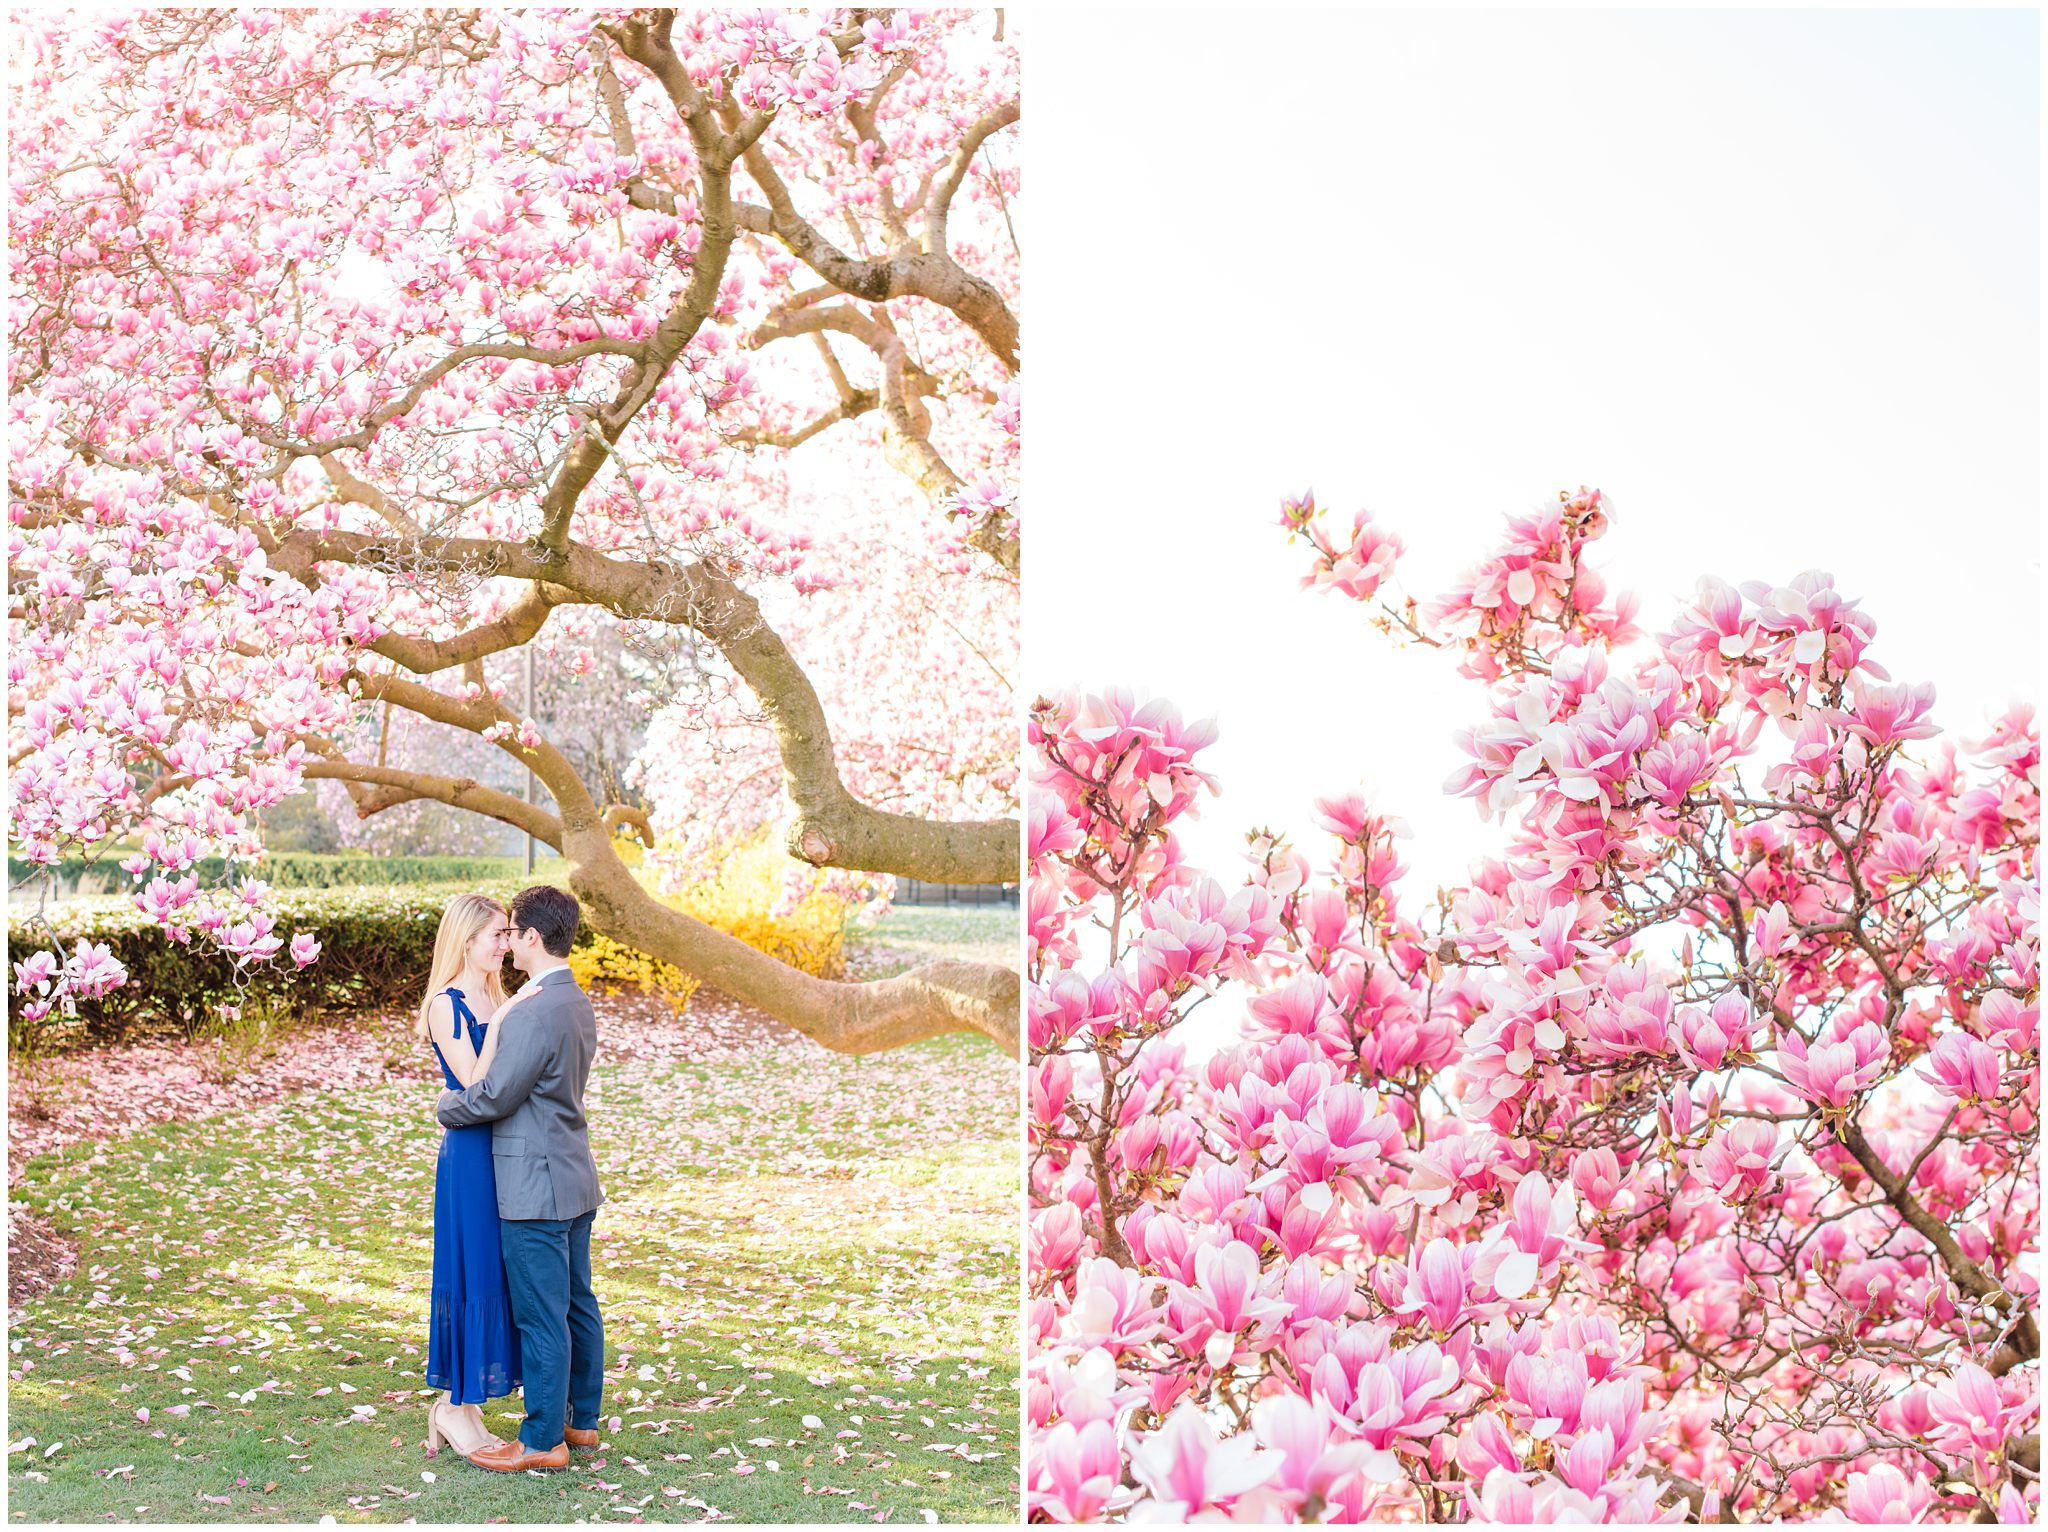 Maya And Alex A Sunrise Cherry Blossom Engagement Session At The Tidal Basin In Washington D C Caitkramer Com Cherry Blossom Engagement Session Magnolia Blossom